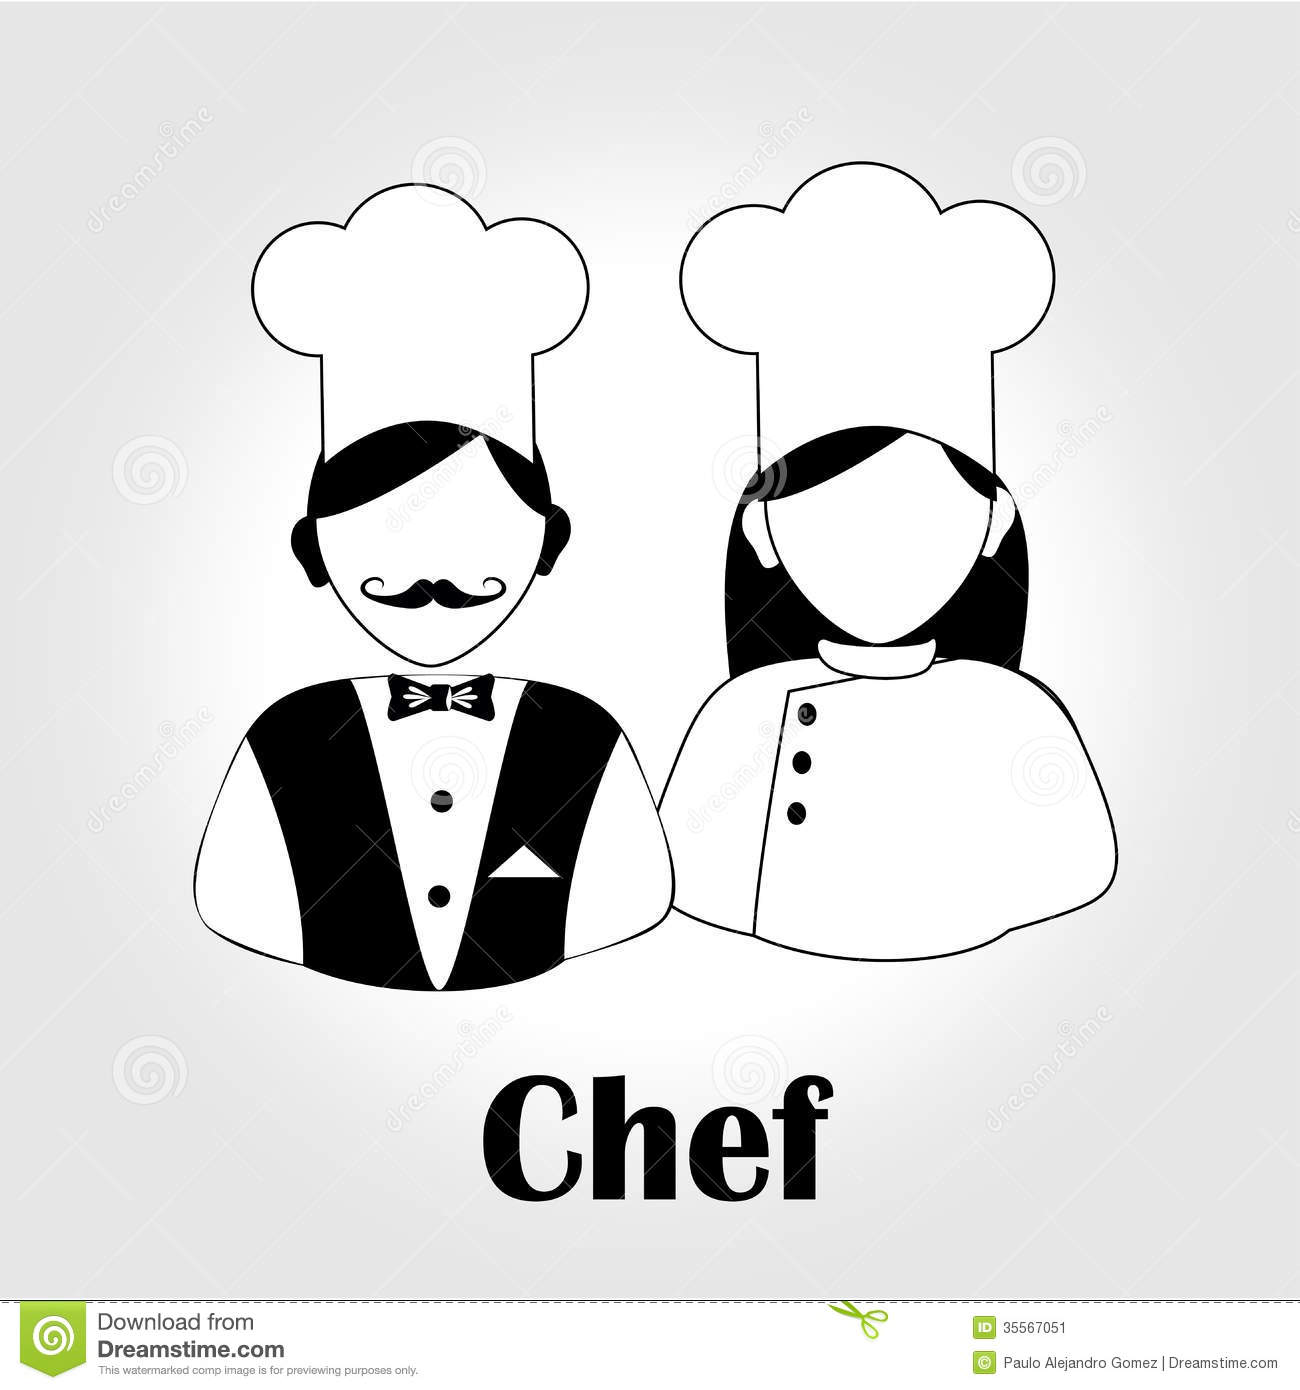 Chef Icon Vector Images & Pictures - Becuo: becuo.com/chef-icon-vector